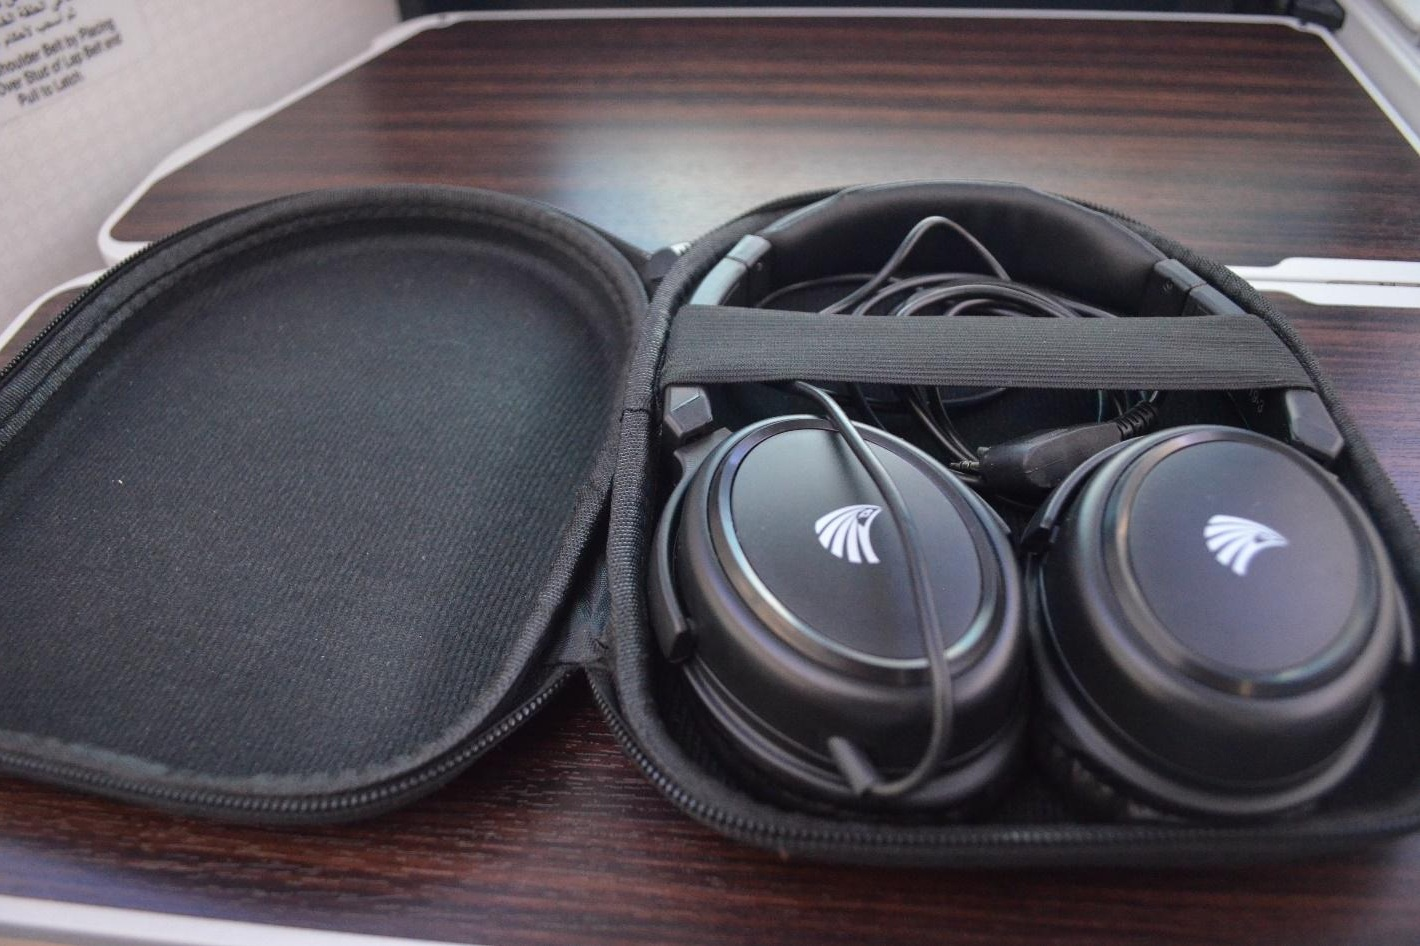 EgyptAir 787 business class – Headphones